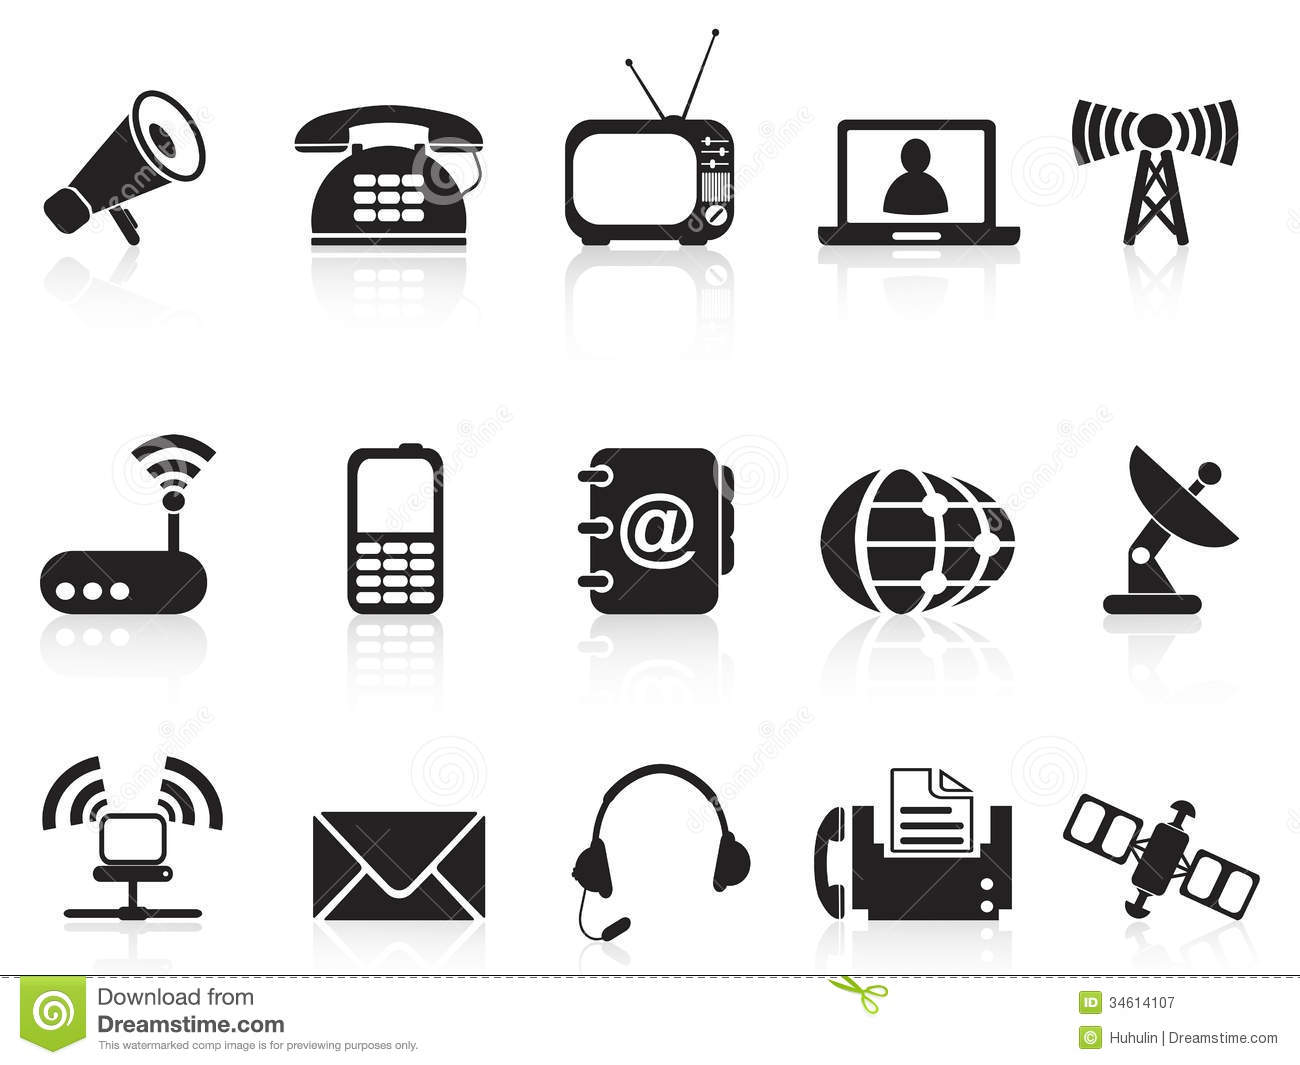 E6 9D B1 E4 BA AC E9 90 B5 E5 A1 94 E6 96 B0 E7 8E A9 E6 B3 95 furthermore Stock Image  munication Tower D Illustration Wireless Equipment Image30961401 further Royalty Free Stock Image Digital Transmitter Sends Signals High Tower Powerful Tv Mobile Multimedia Broadcast Information Image33041656 furthermore munication pole  munication pole tower  munication tower long lifetime high quality  munication pole radio and tele munication tower self supporting  munication tower signal icon besides Spoilers nisekoi episode 9 discussion. on radio broadcasting tower